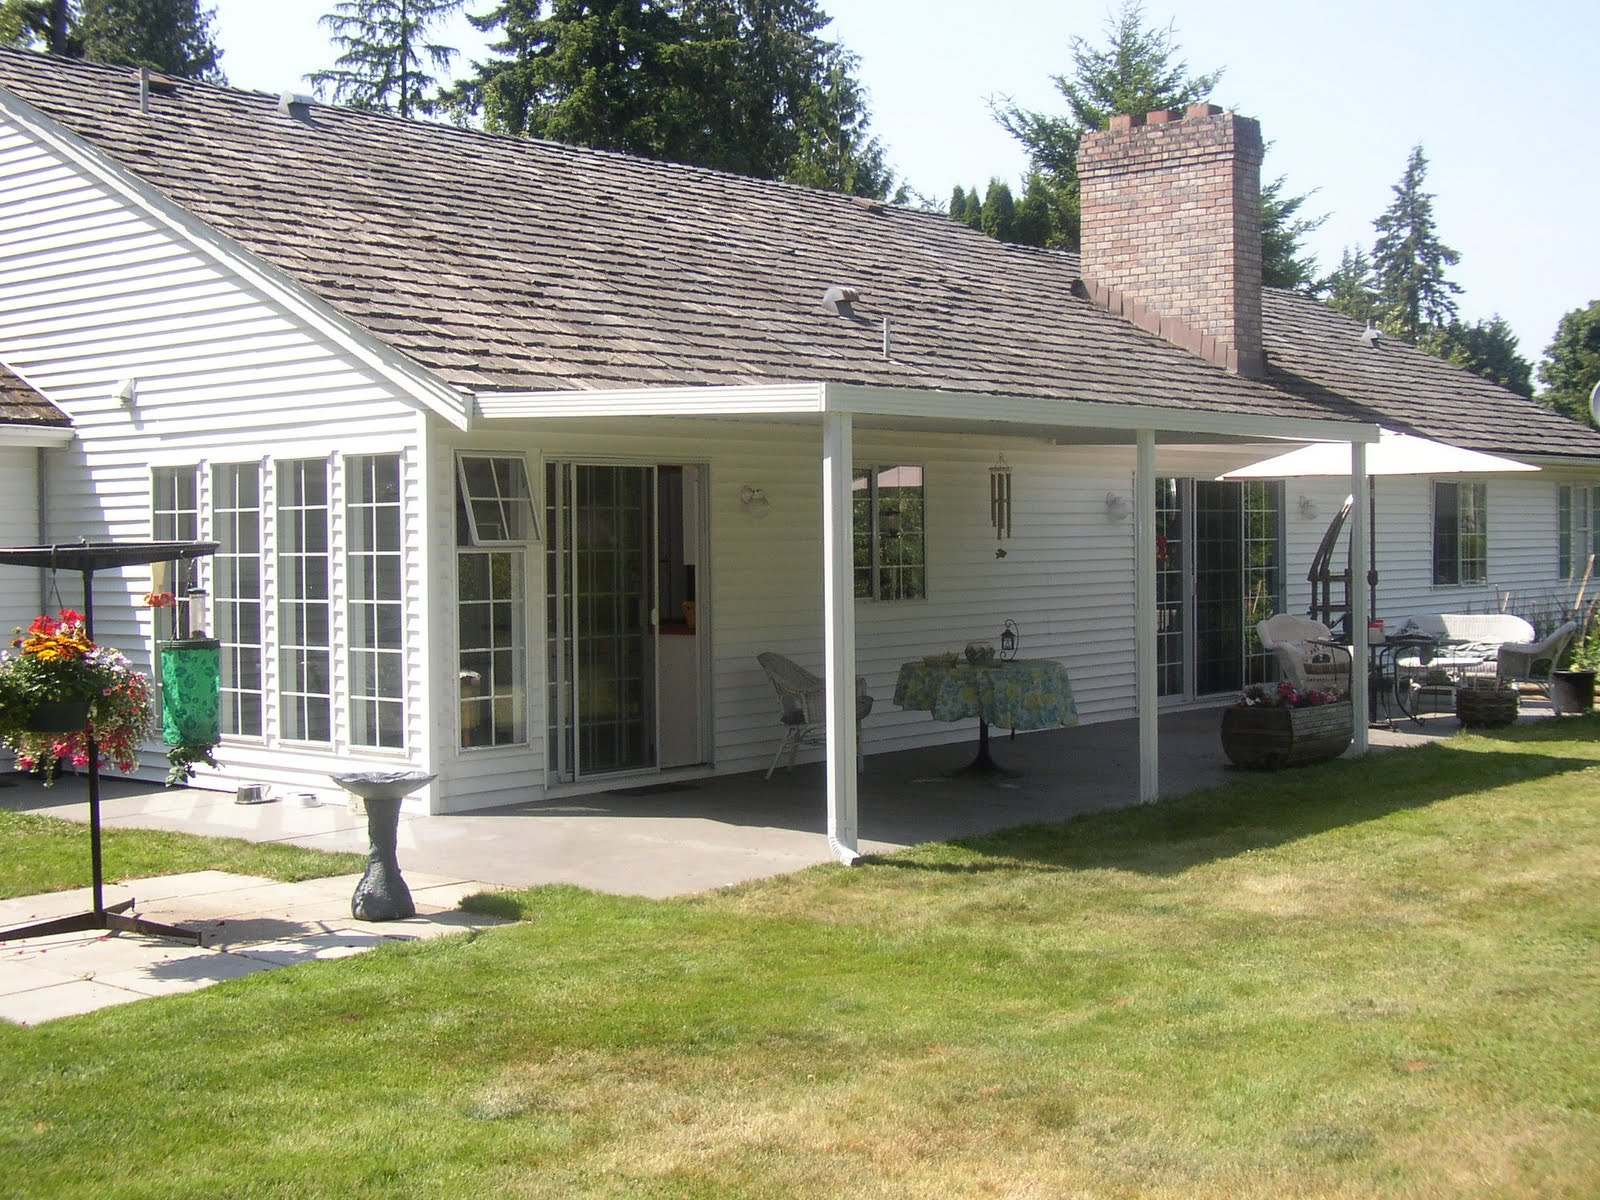 Awnings and Patio Covers: Why Buy A Patio Cover?